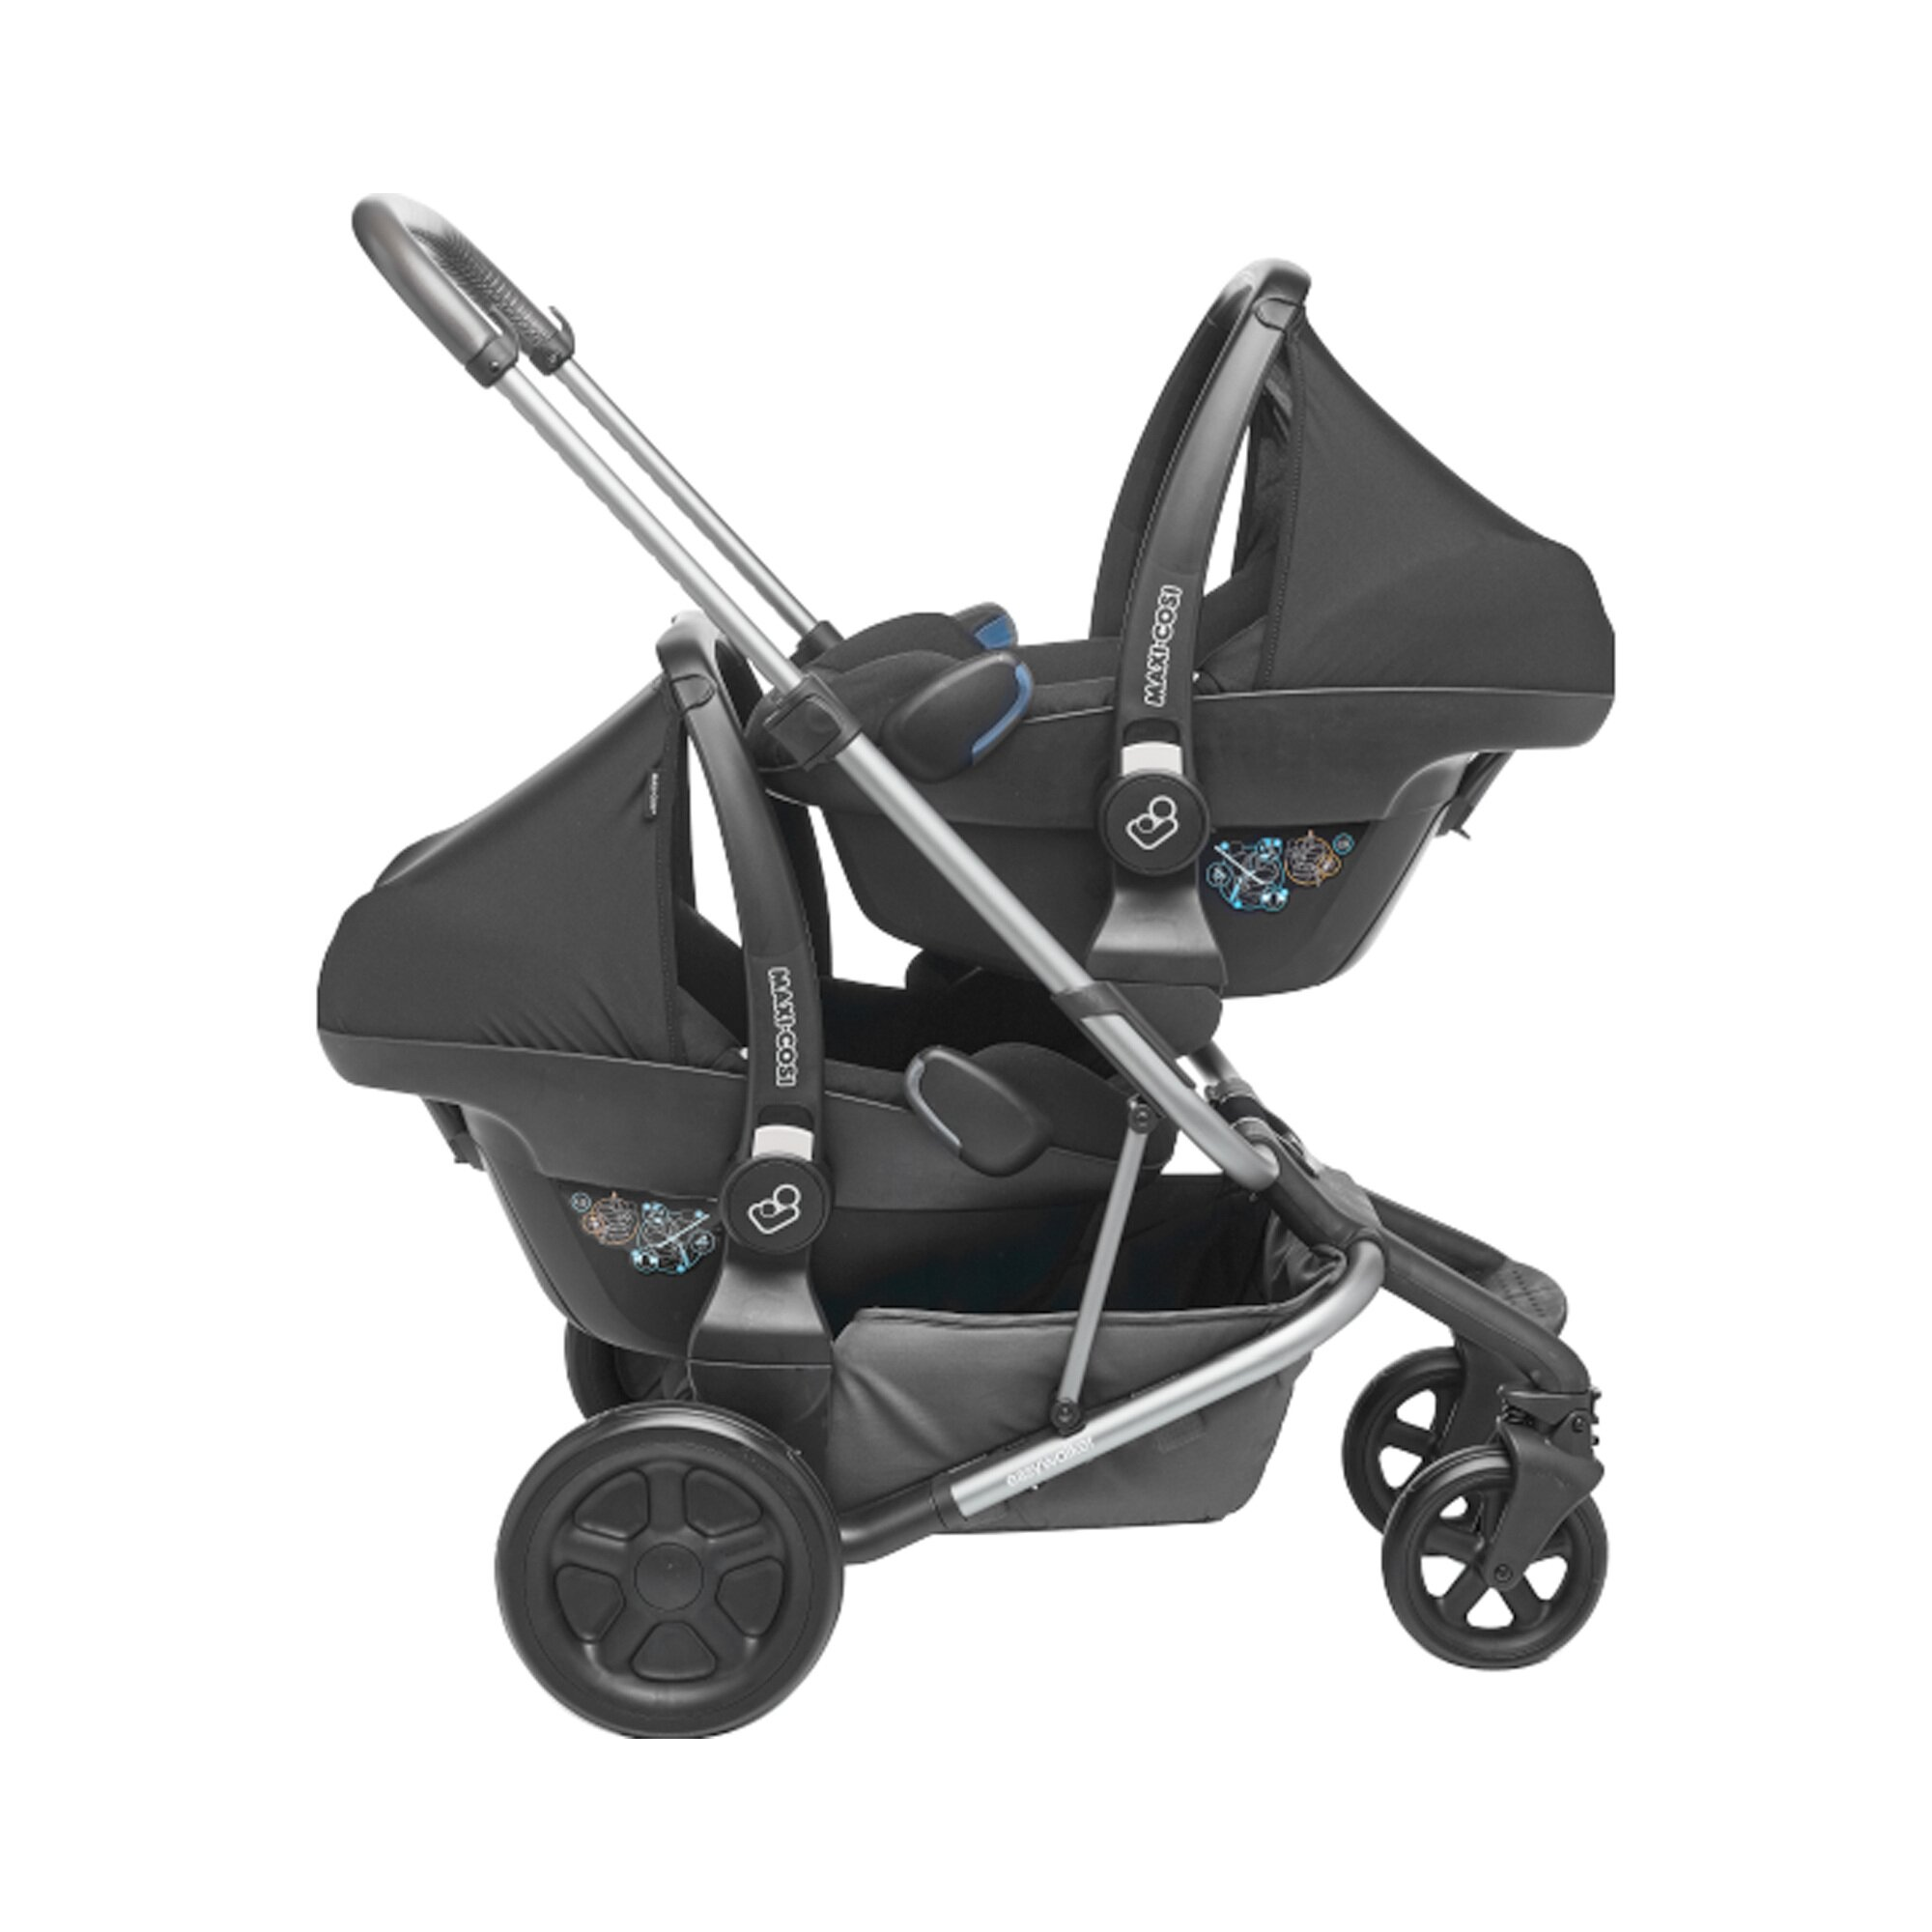 easywalker-adapter-fur-maxi-cosi-cybex-nuna-und-kiddy-babyschale-fur-harvey